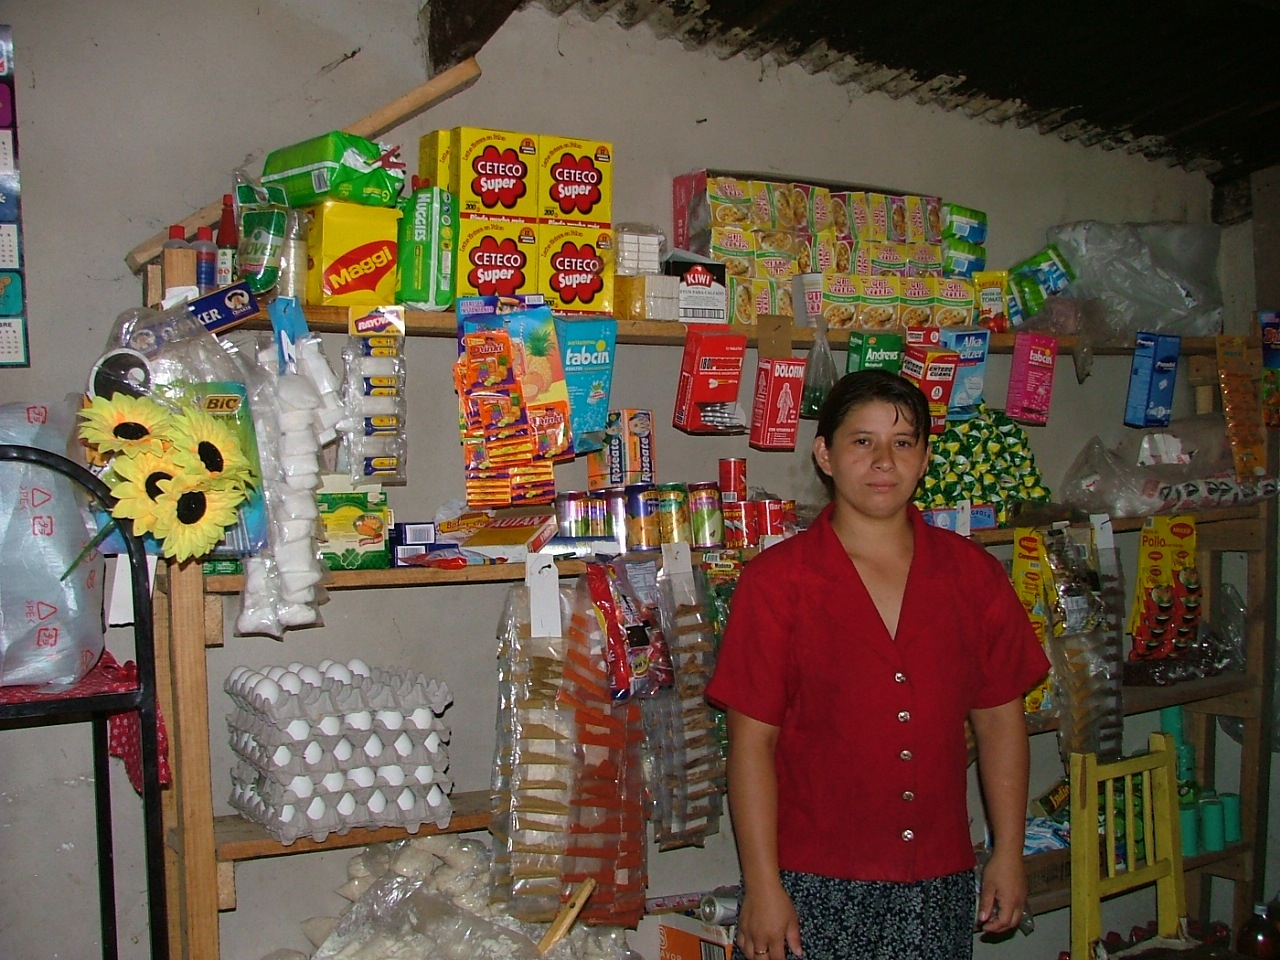 Maria in her store